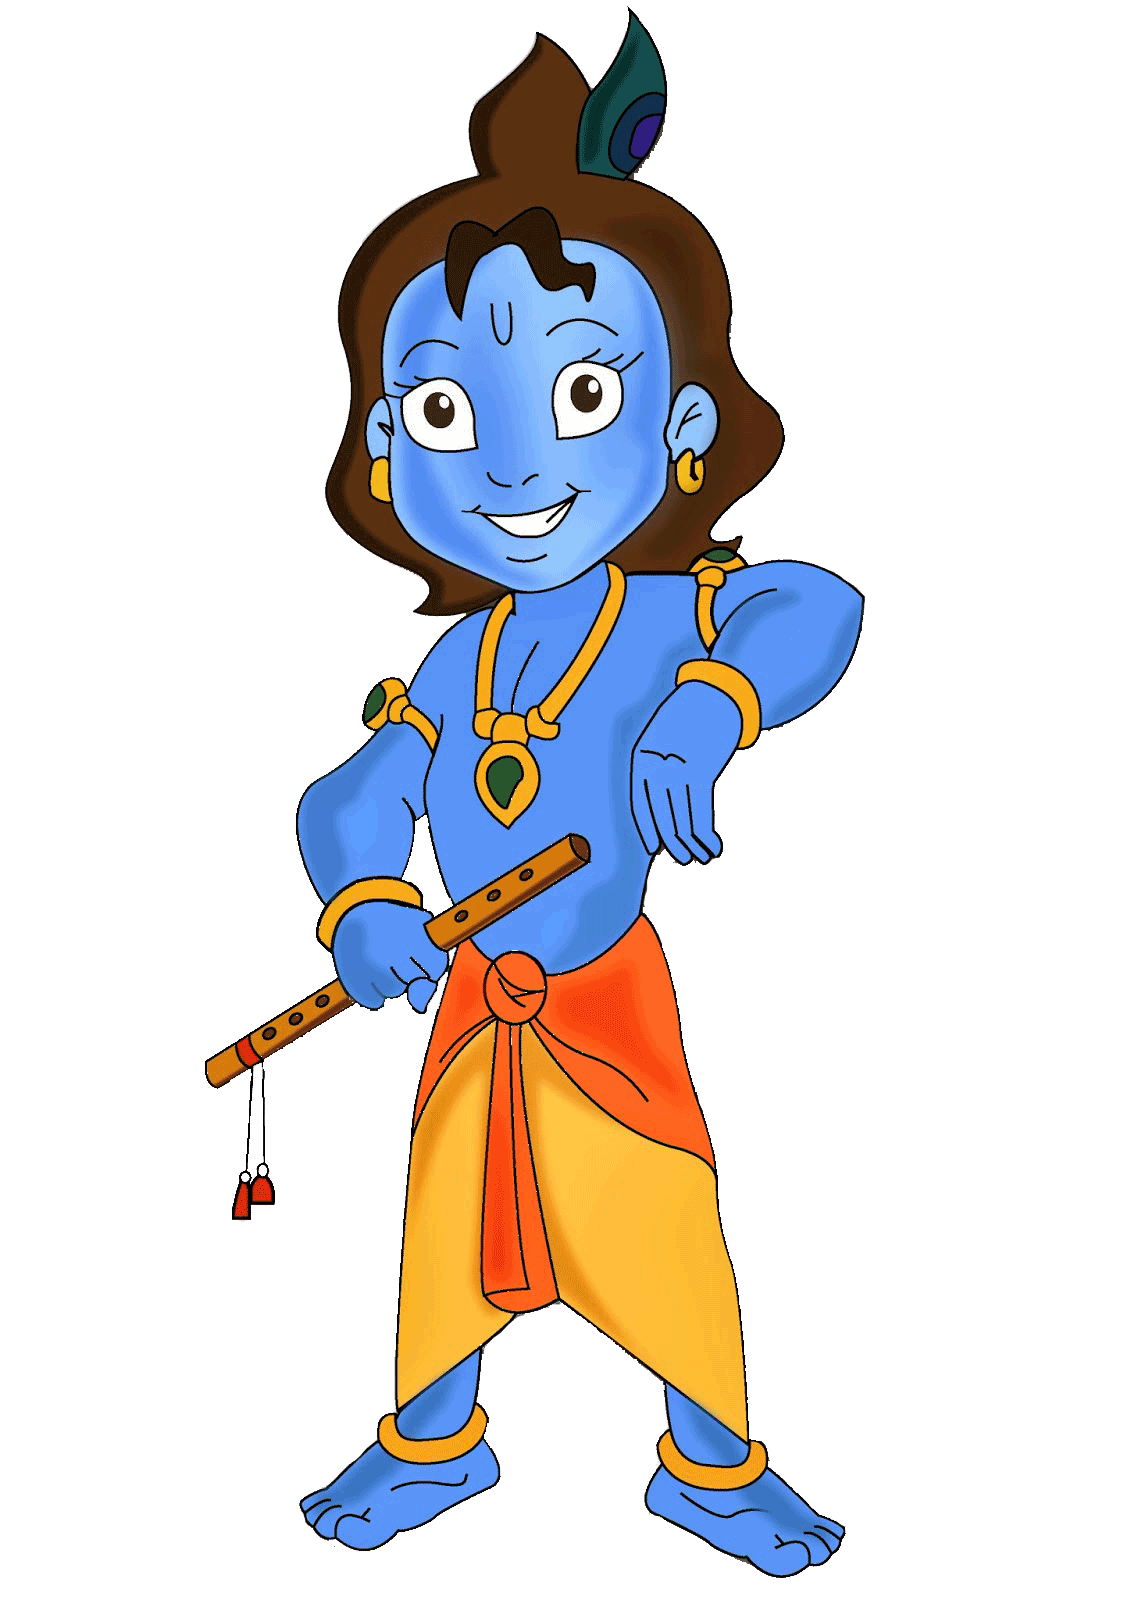 Lord Krishna Images Baby Krishna Sri Krishna Png Download Free Transparent Png Logos